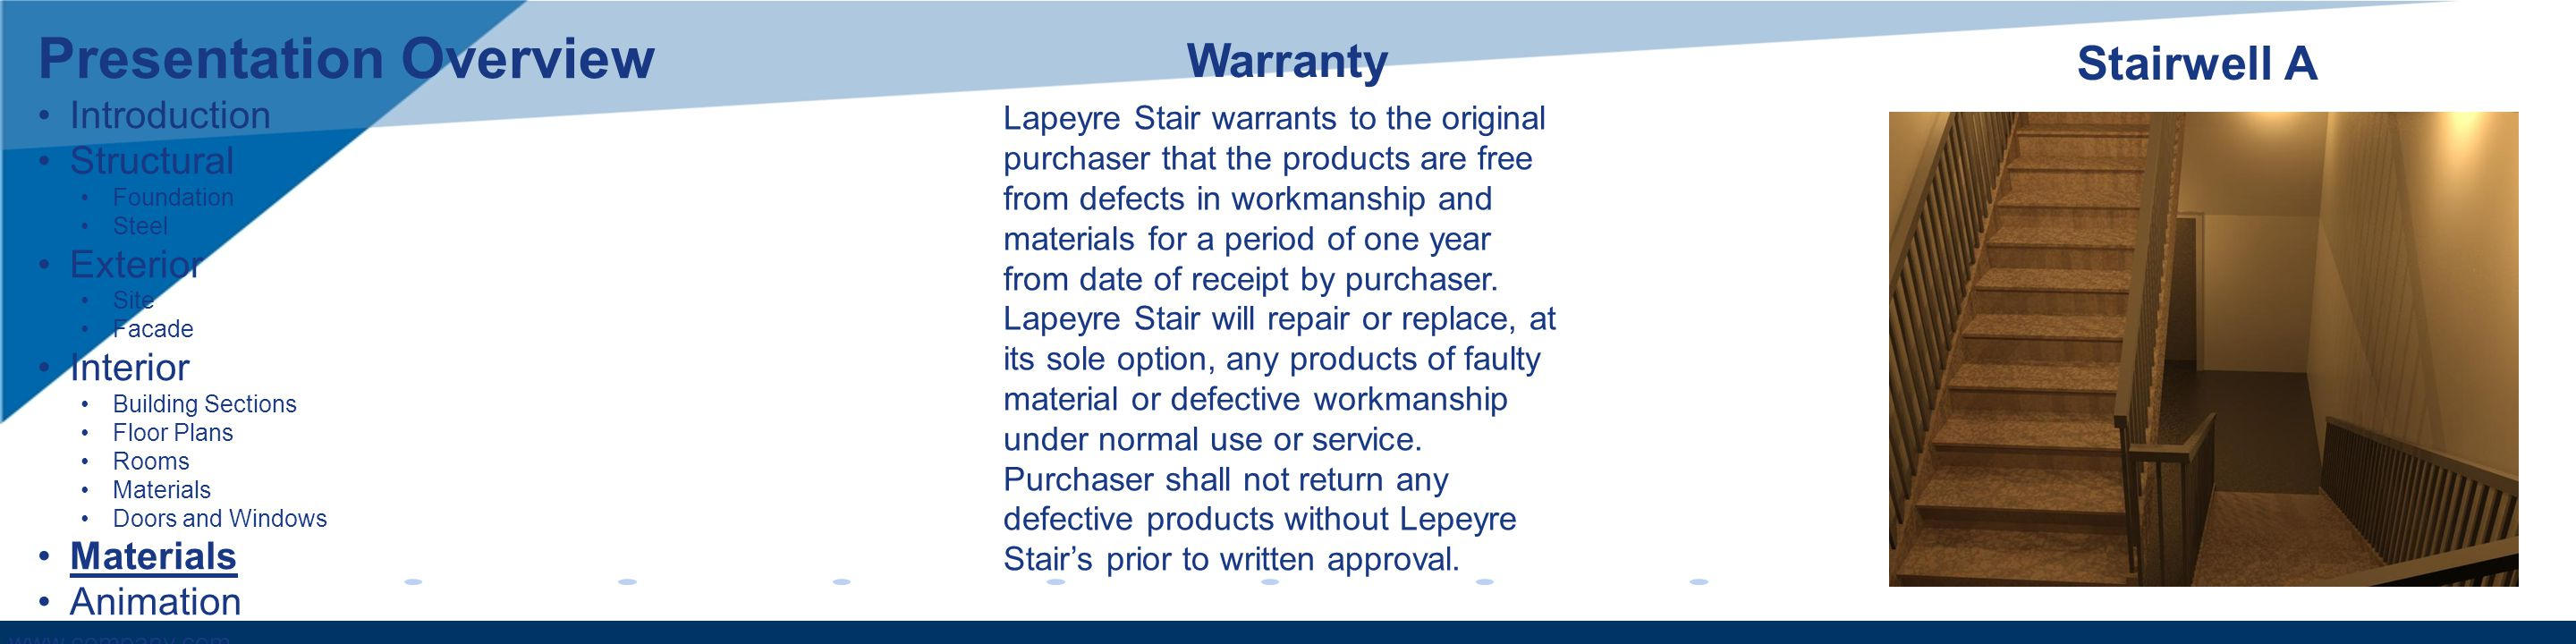 www.company.com Warranty Lapeyre Stair warrants to the original purchaser that the products are free from defects in workmanship and materials for a p